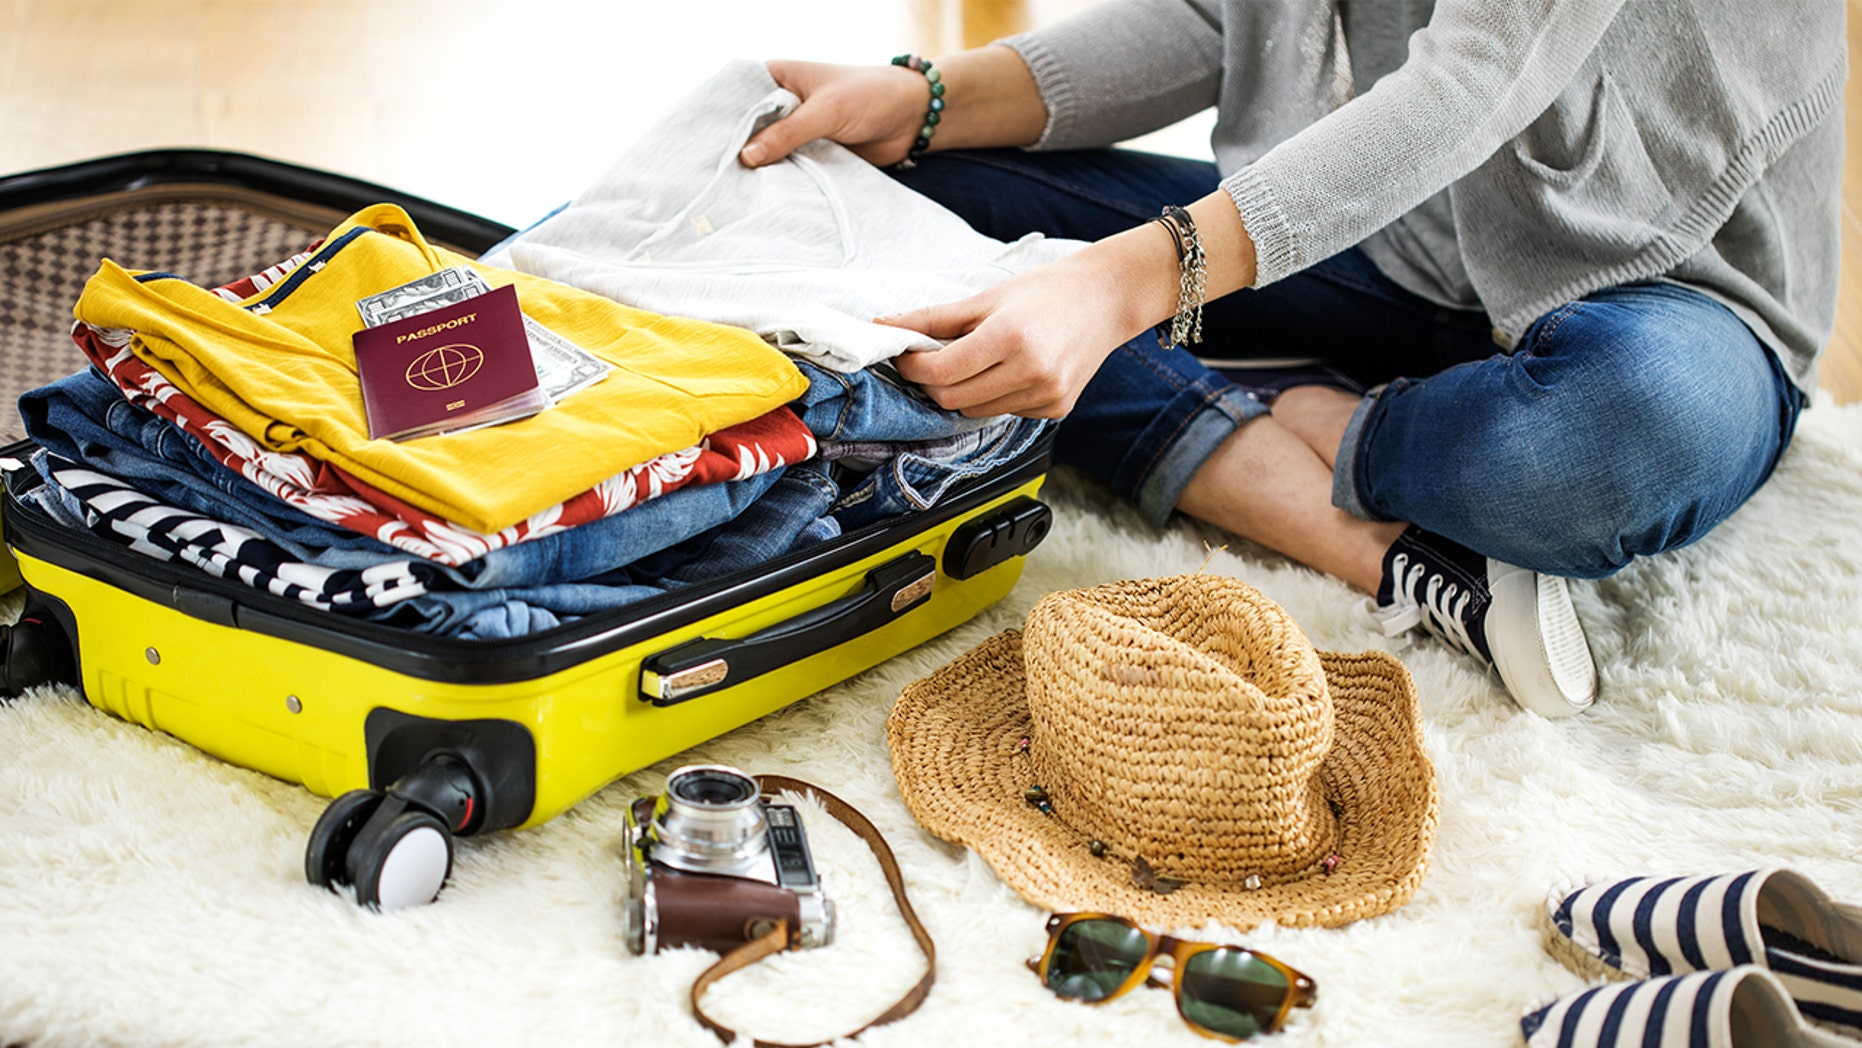 Besides last minute packing, don't forget to do these 11 things the day before your next vacation.